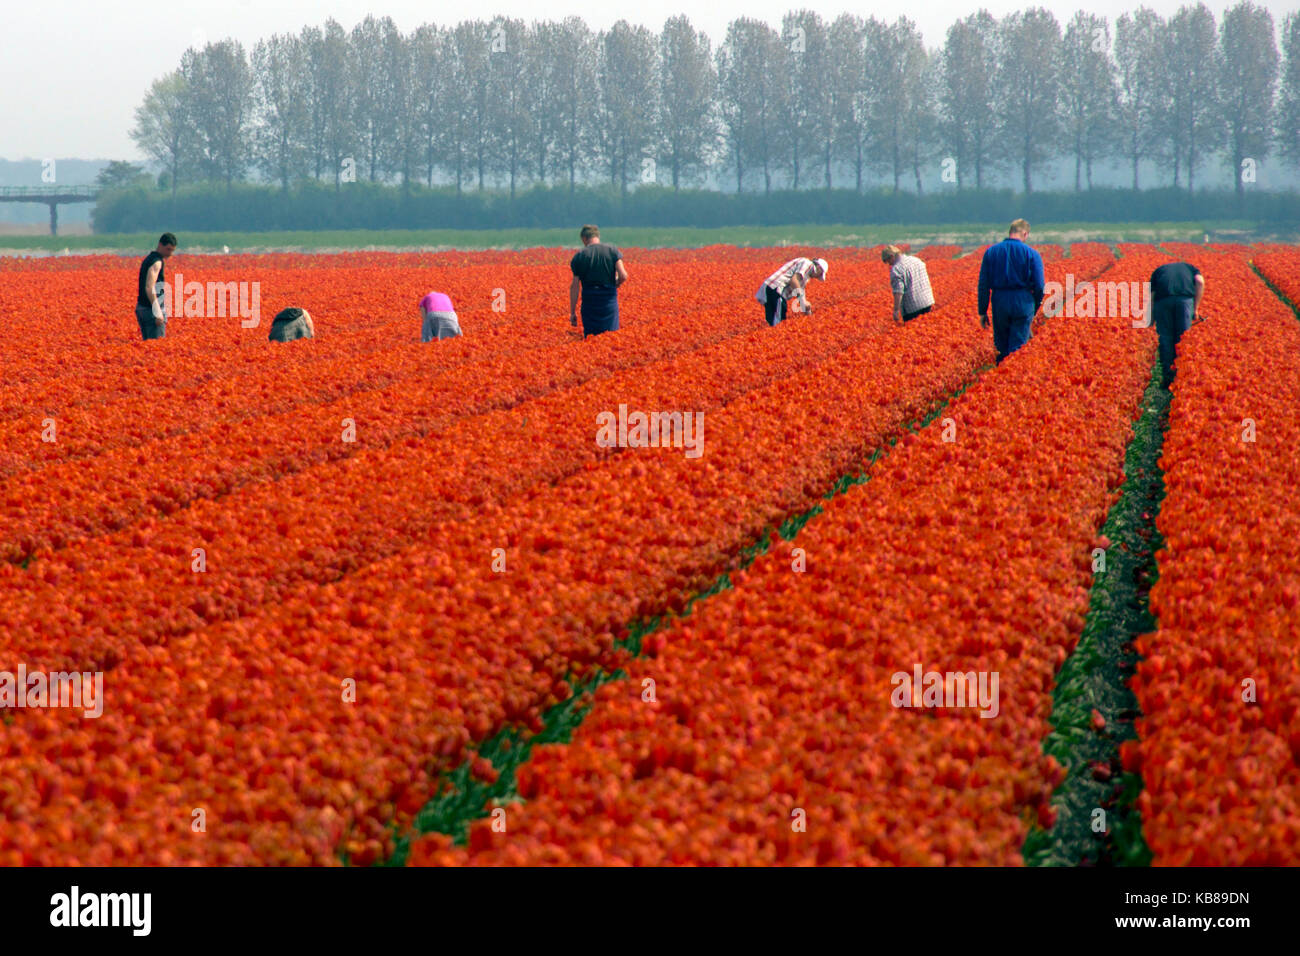 Workers in a tulip field - Stock Image